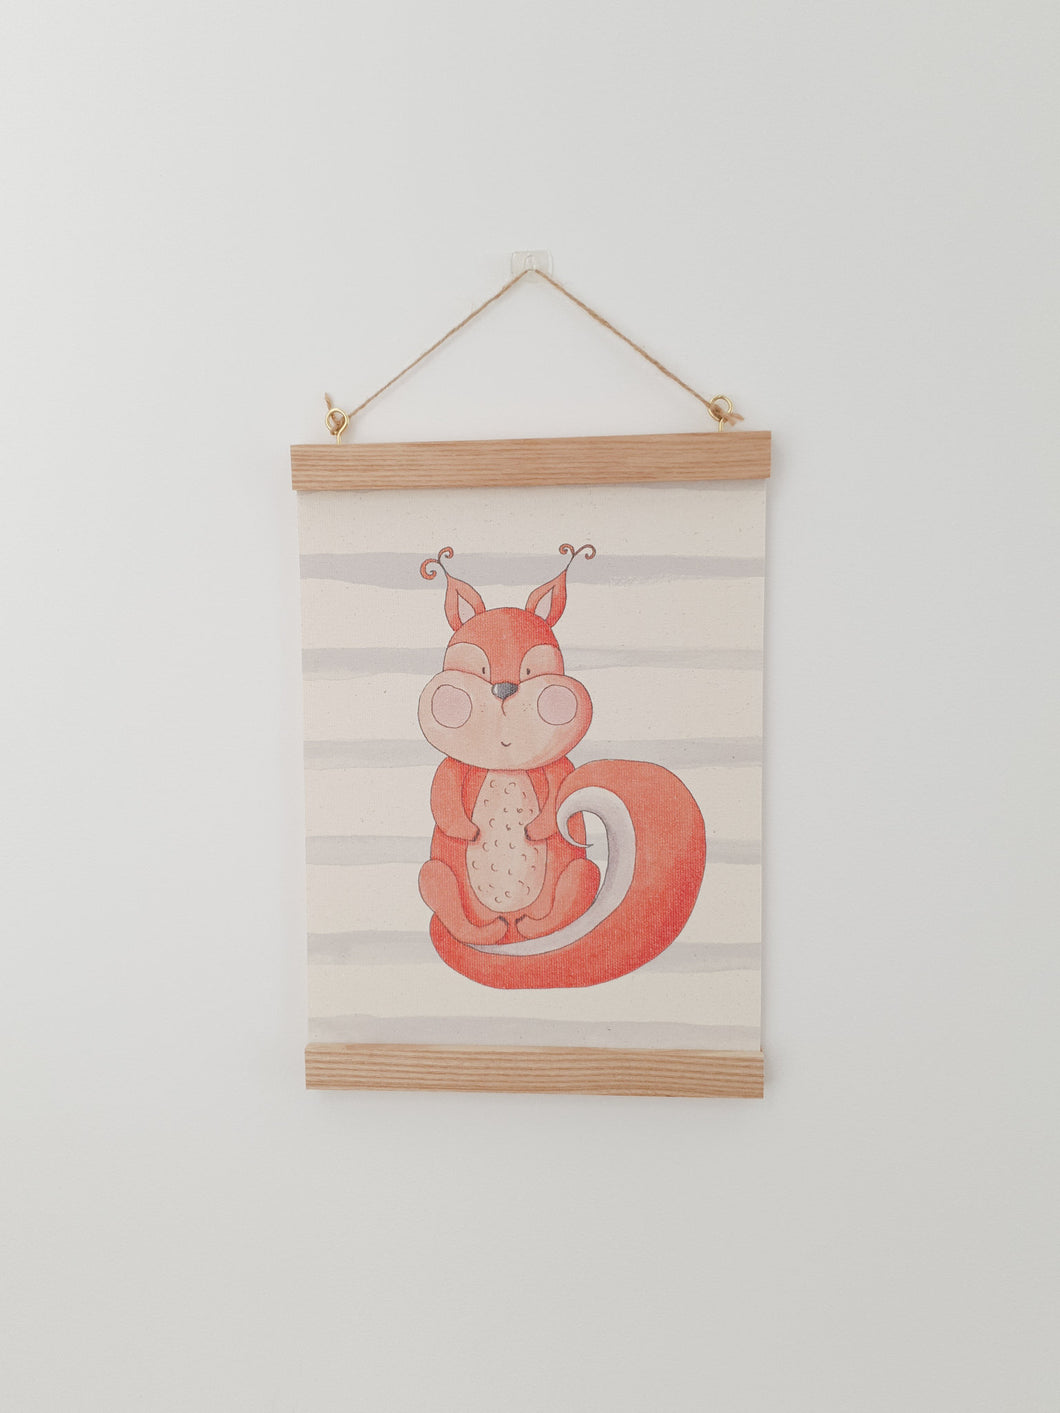 Squirrel canvas print with wooden wall hanger - Animal nursery accessory - Animal bedroom accessory - Squirrel Print